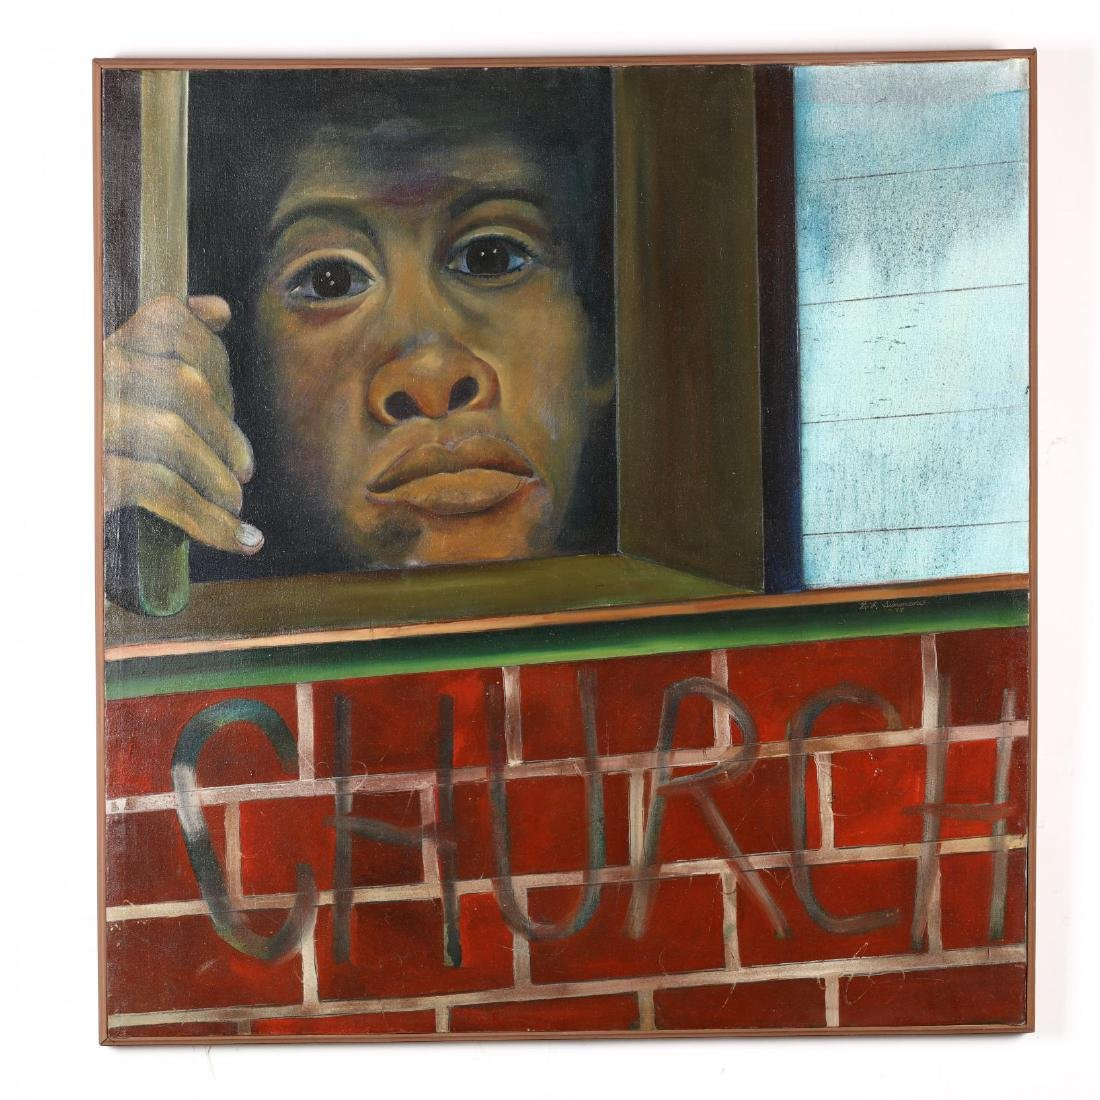 Large Enigmatic Painting of a Prisoner Behind Bars